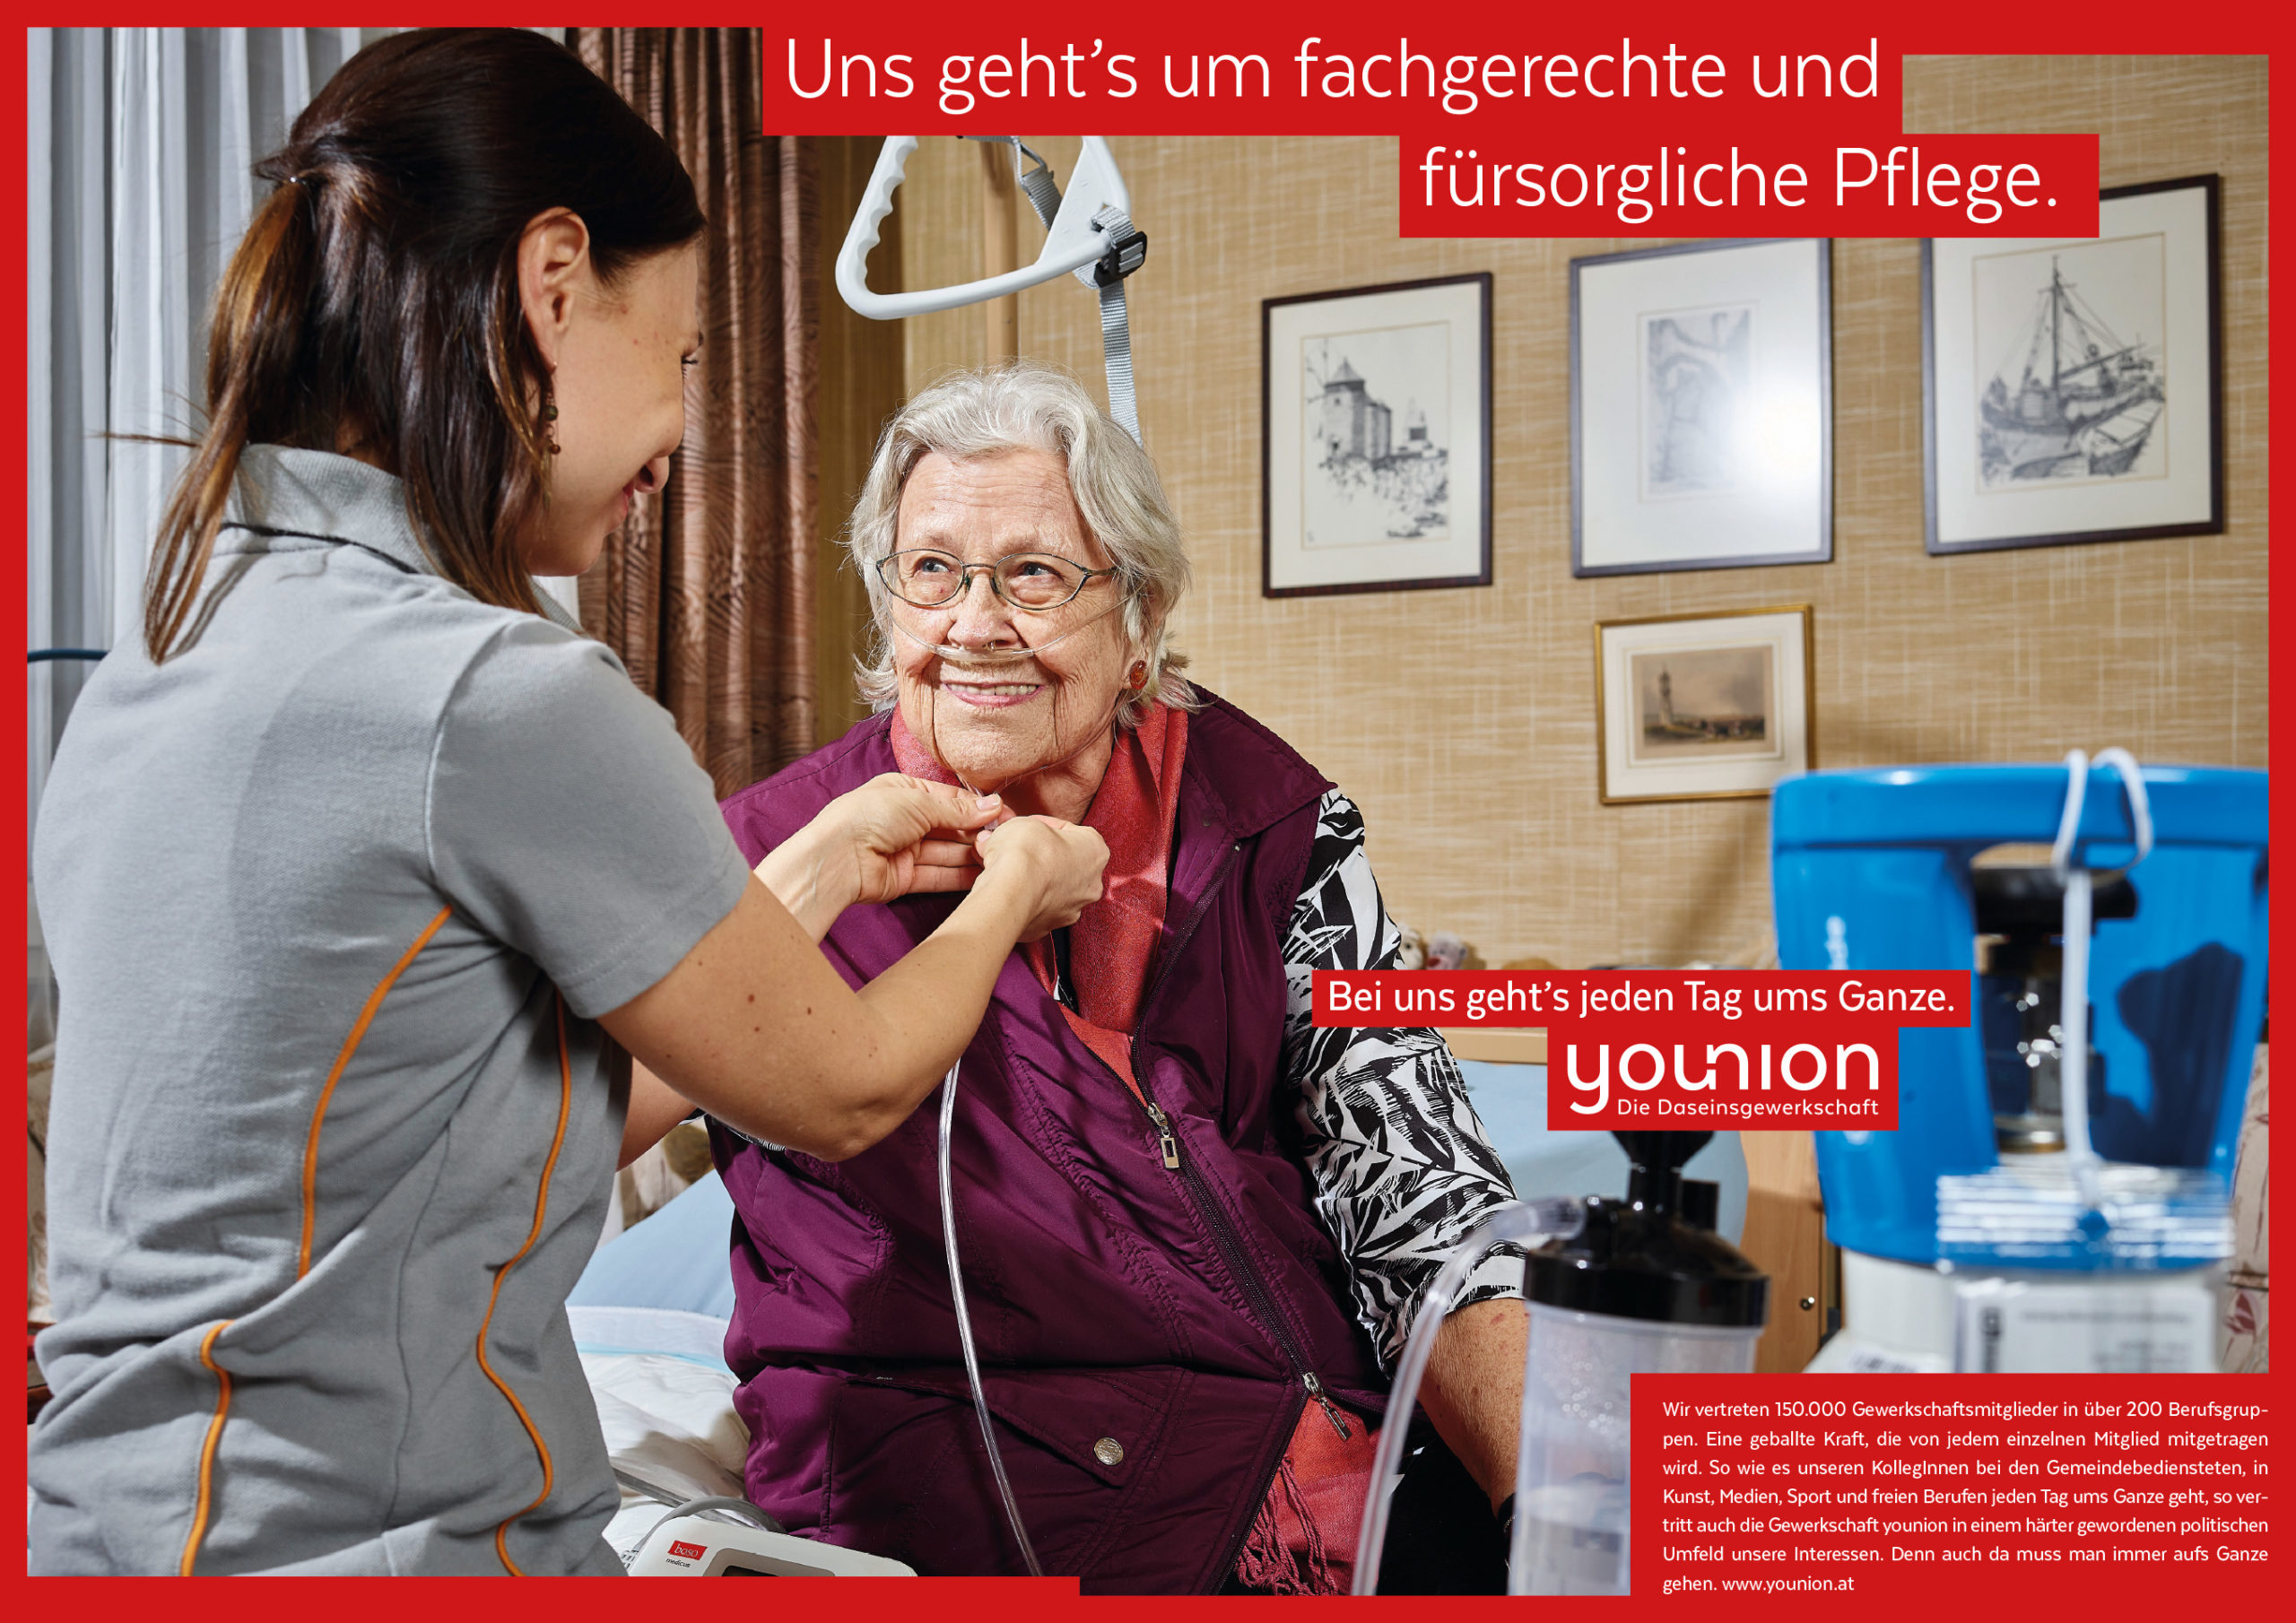 Younion-Kampagne-Sujet-12-scaled.jpg